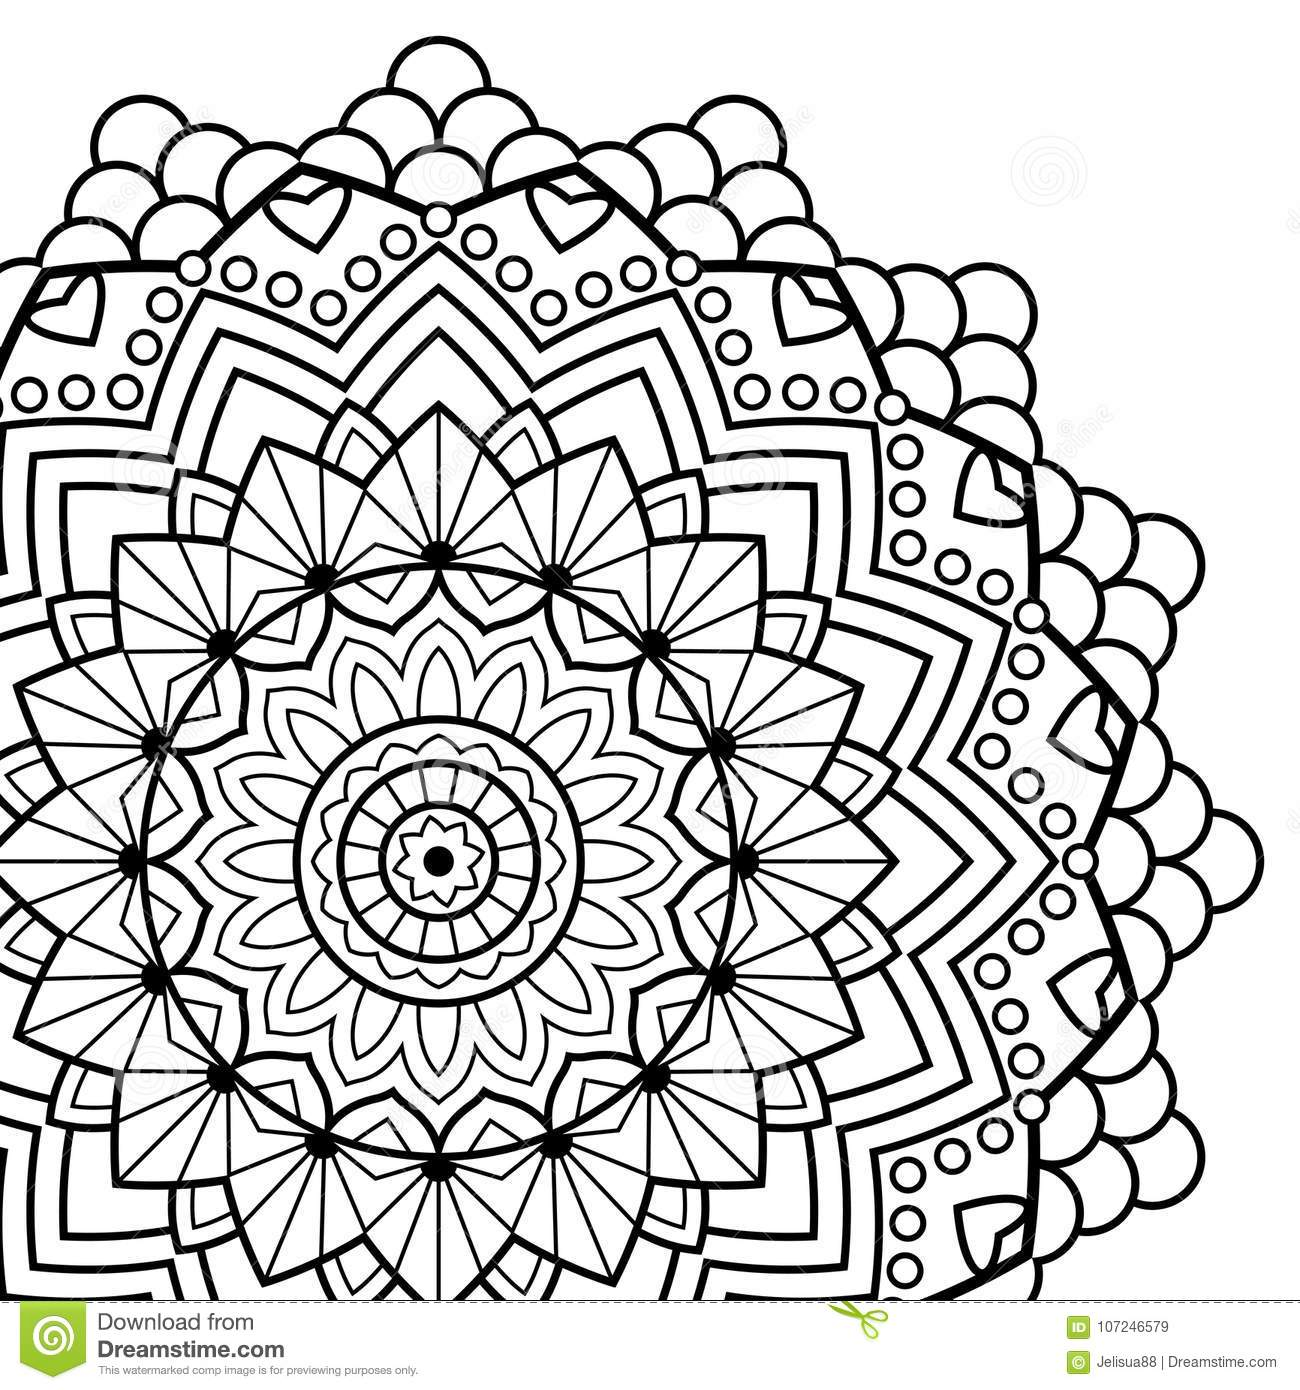 Download Coloring Book Pages Mandala Indian Antistress Medallion Stock Vector